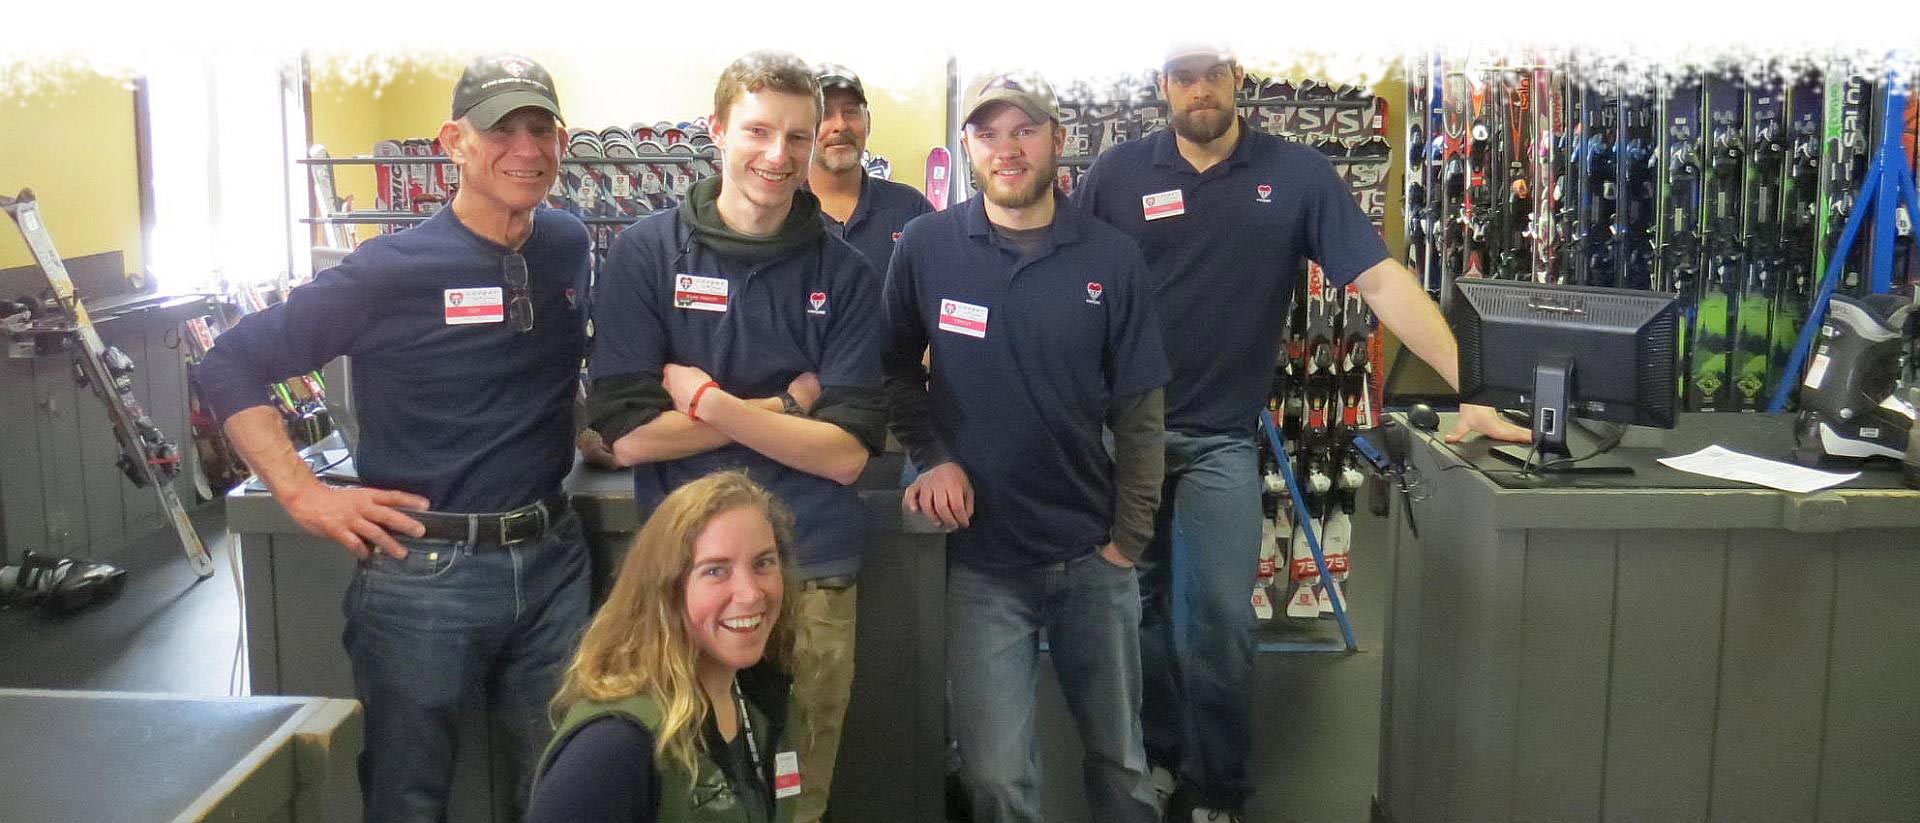 cooper rental shop staff posing